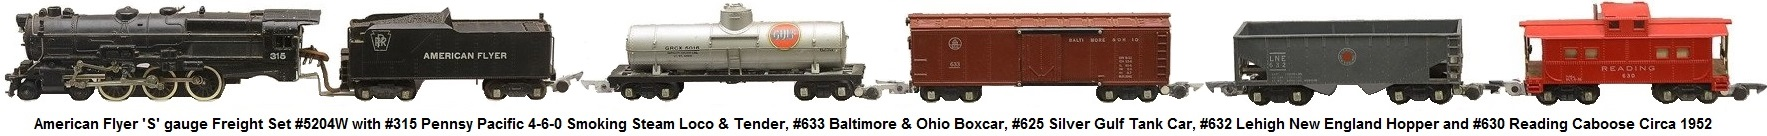 American Flyer 'S' gauge freight set #5204W circa 1952 with #315 Pennsy Pacific loco with smoke and choo-choo sounds, tender #633 Baltimore & Ohio boxcar #625 silver Gulf tank #632 Lehigh New England hopper and #630 Reading caboose